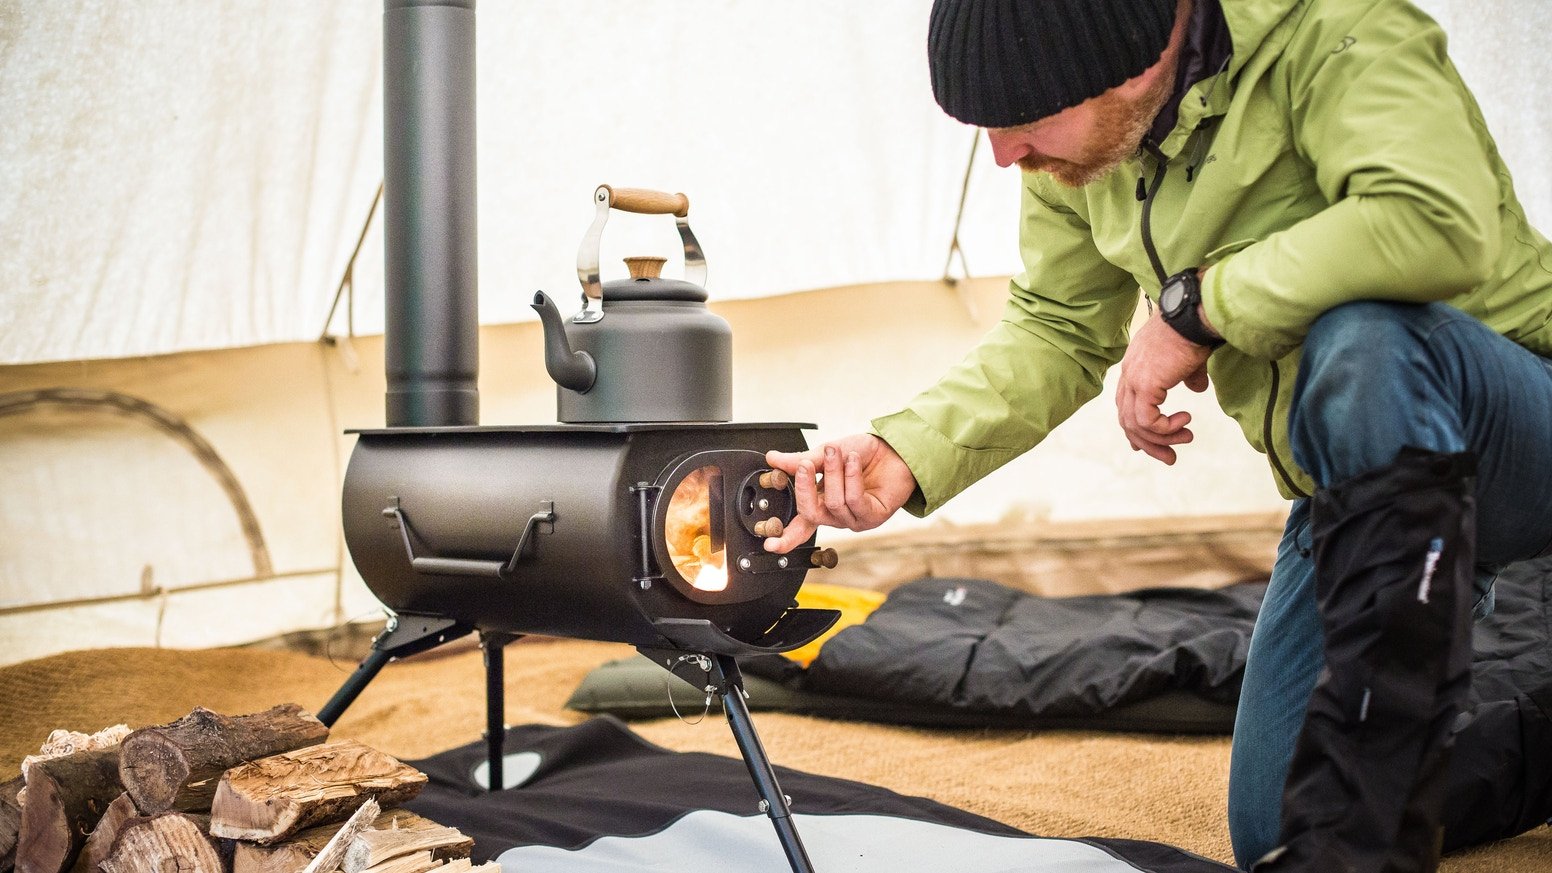 A Lightweight Folding Stove With Flue For Heating And Cooking In Tents Sheds